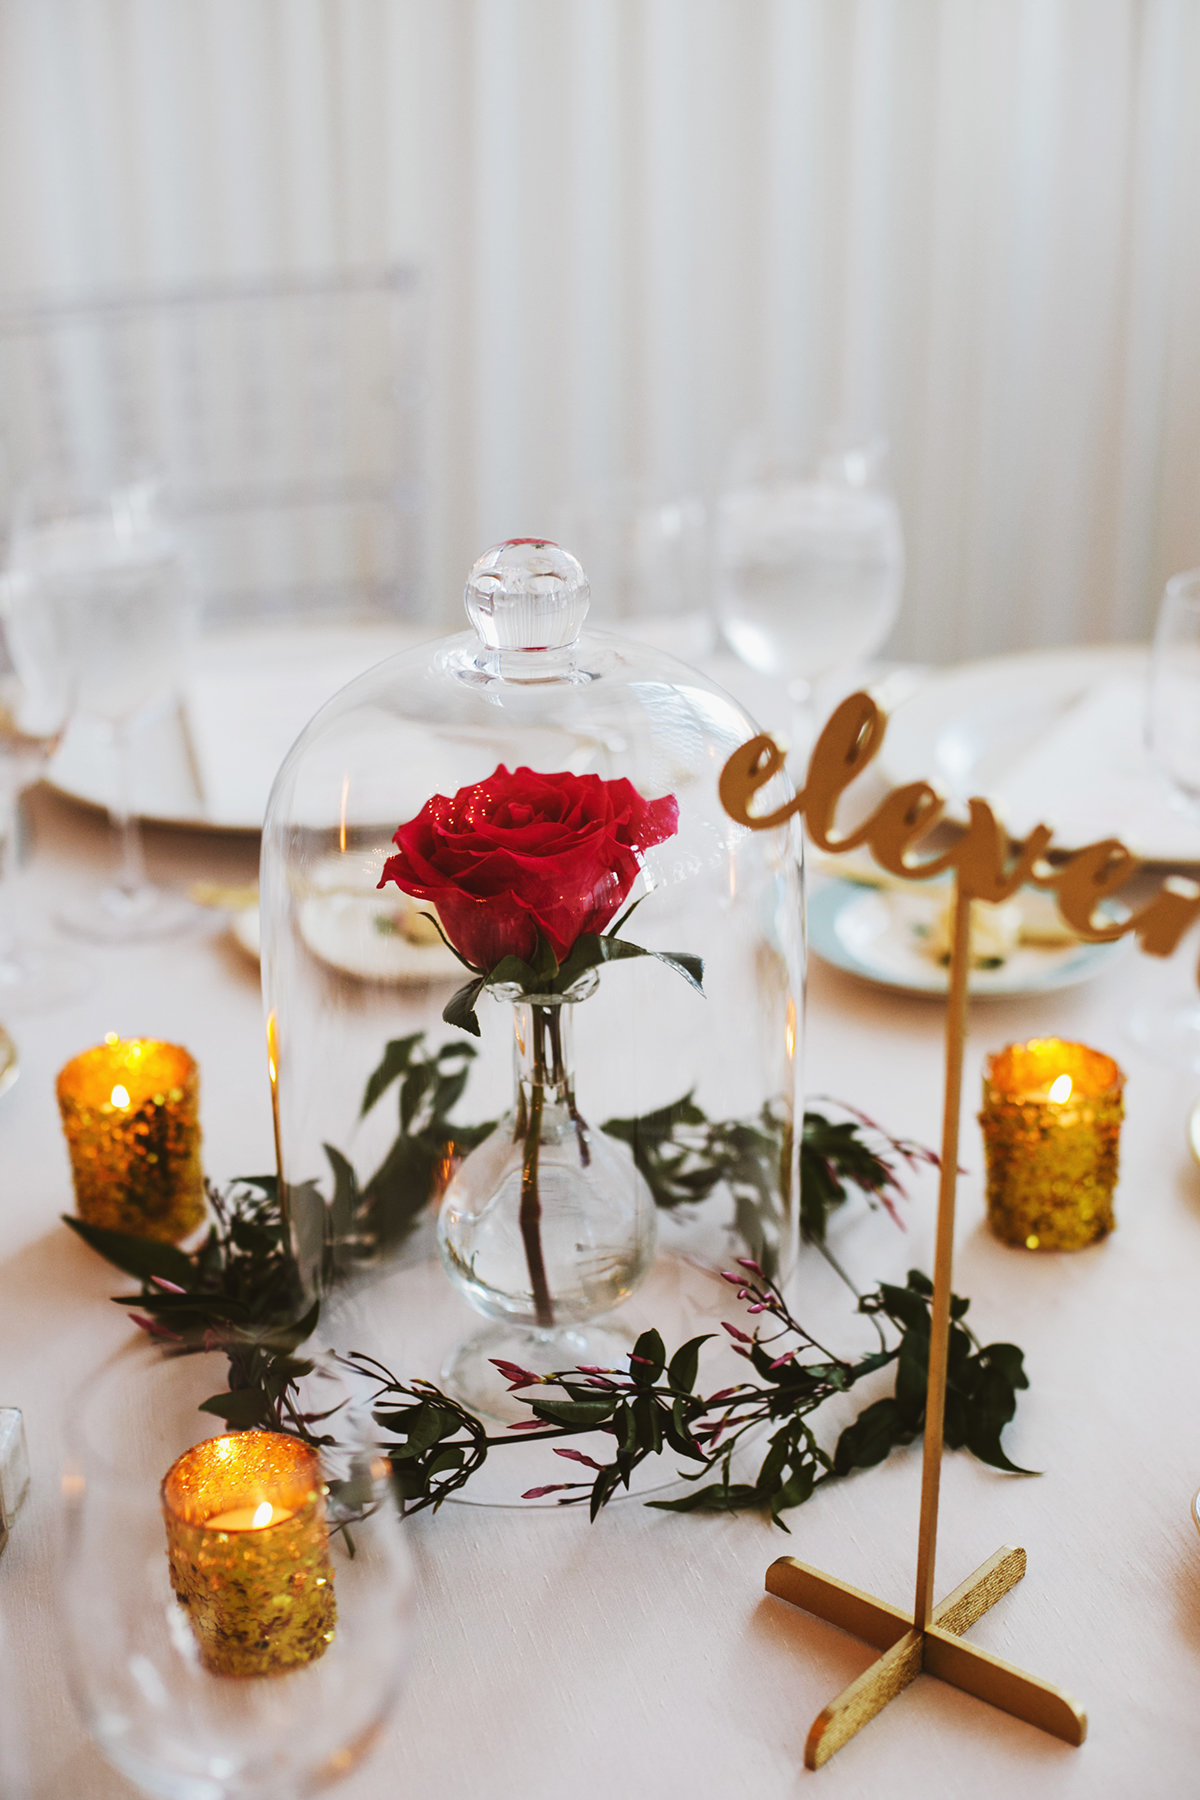 Wedding centerpiece ideas for disney theme